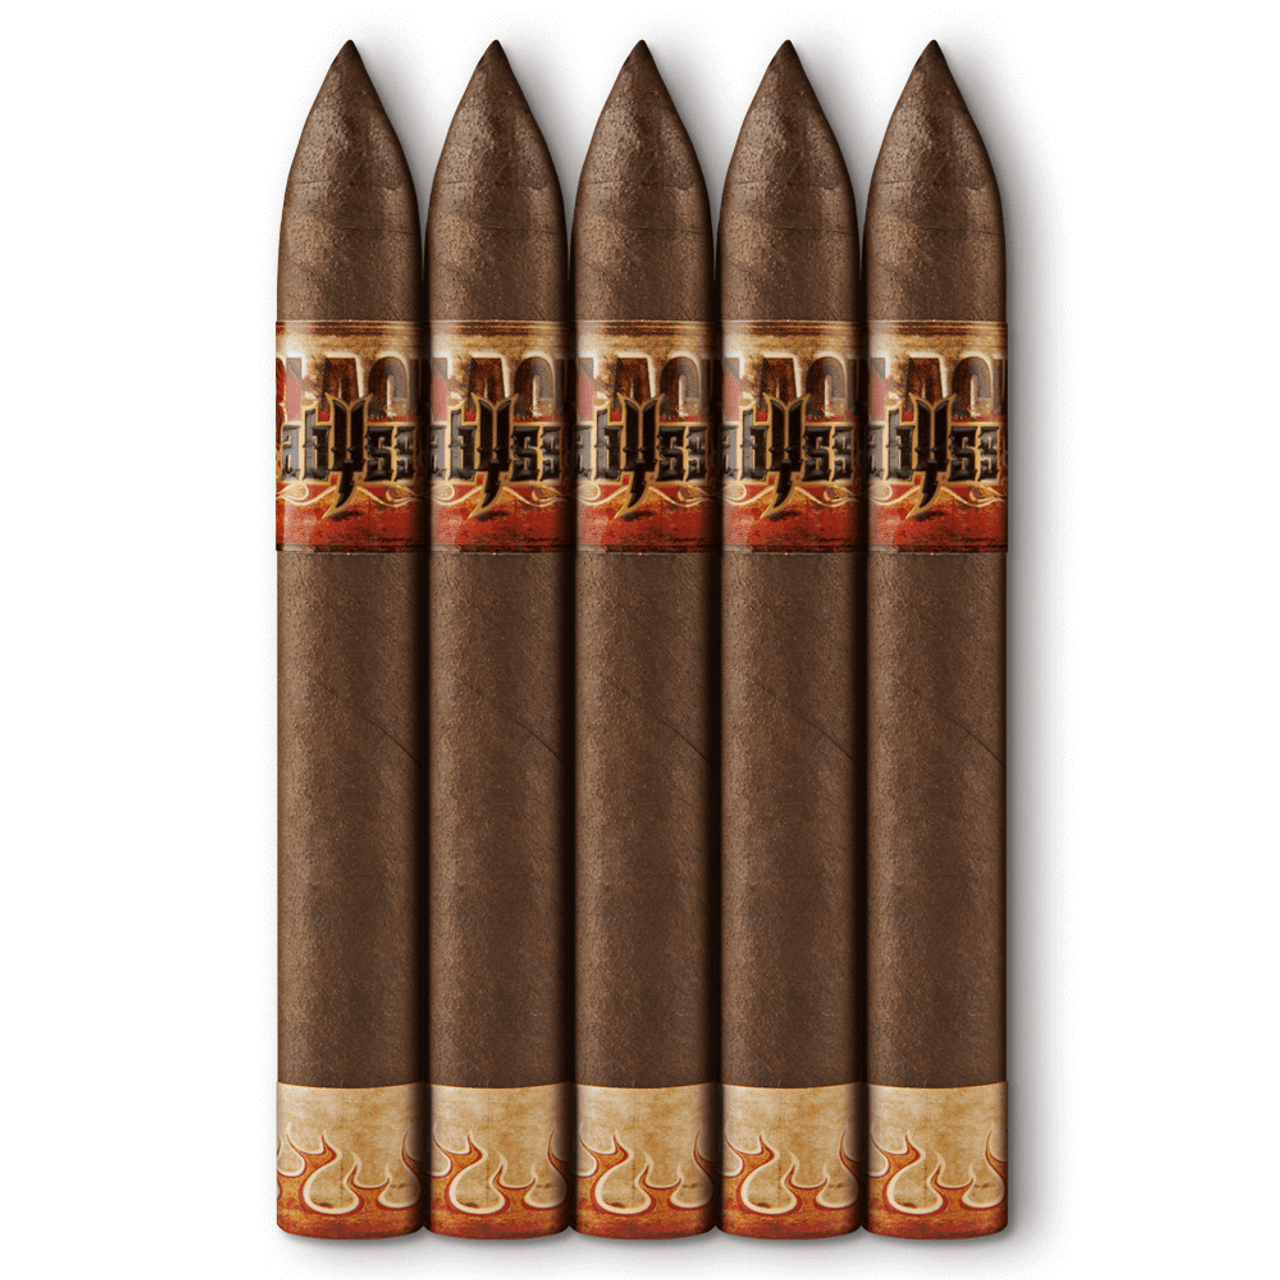 Black Abyss Hydra Cigars - 6 x 52 (Pack of 5)